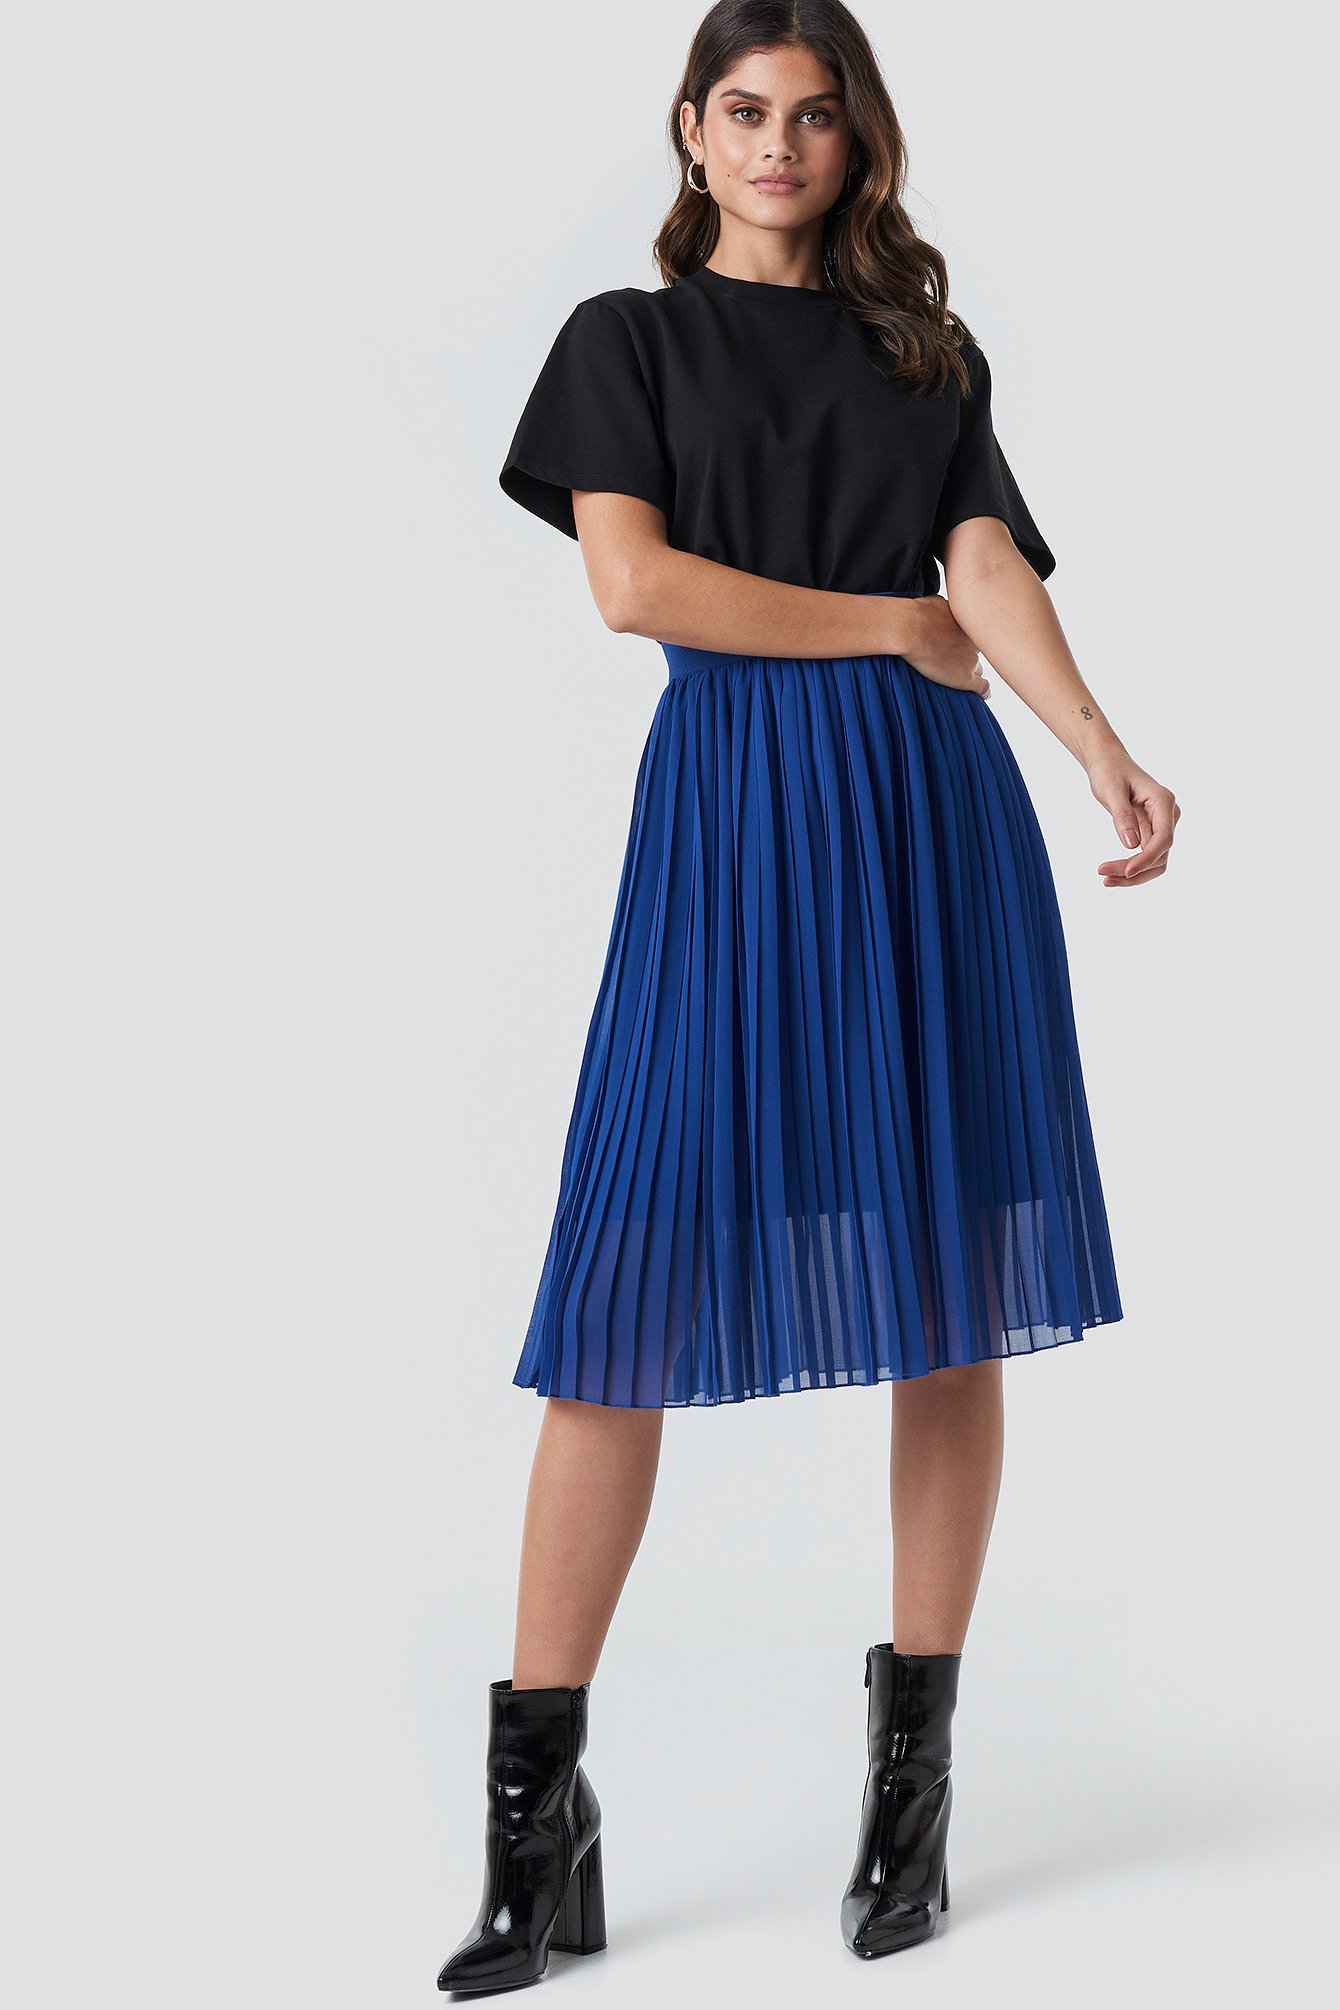 Blue Midi Pleated Skirt